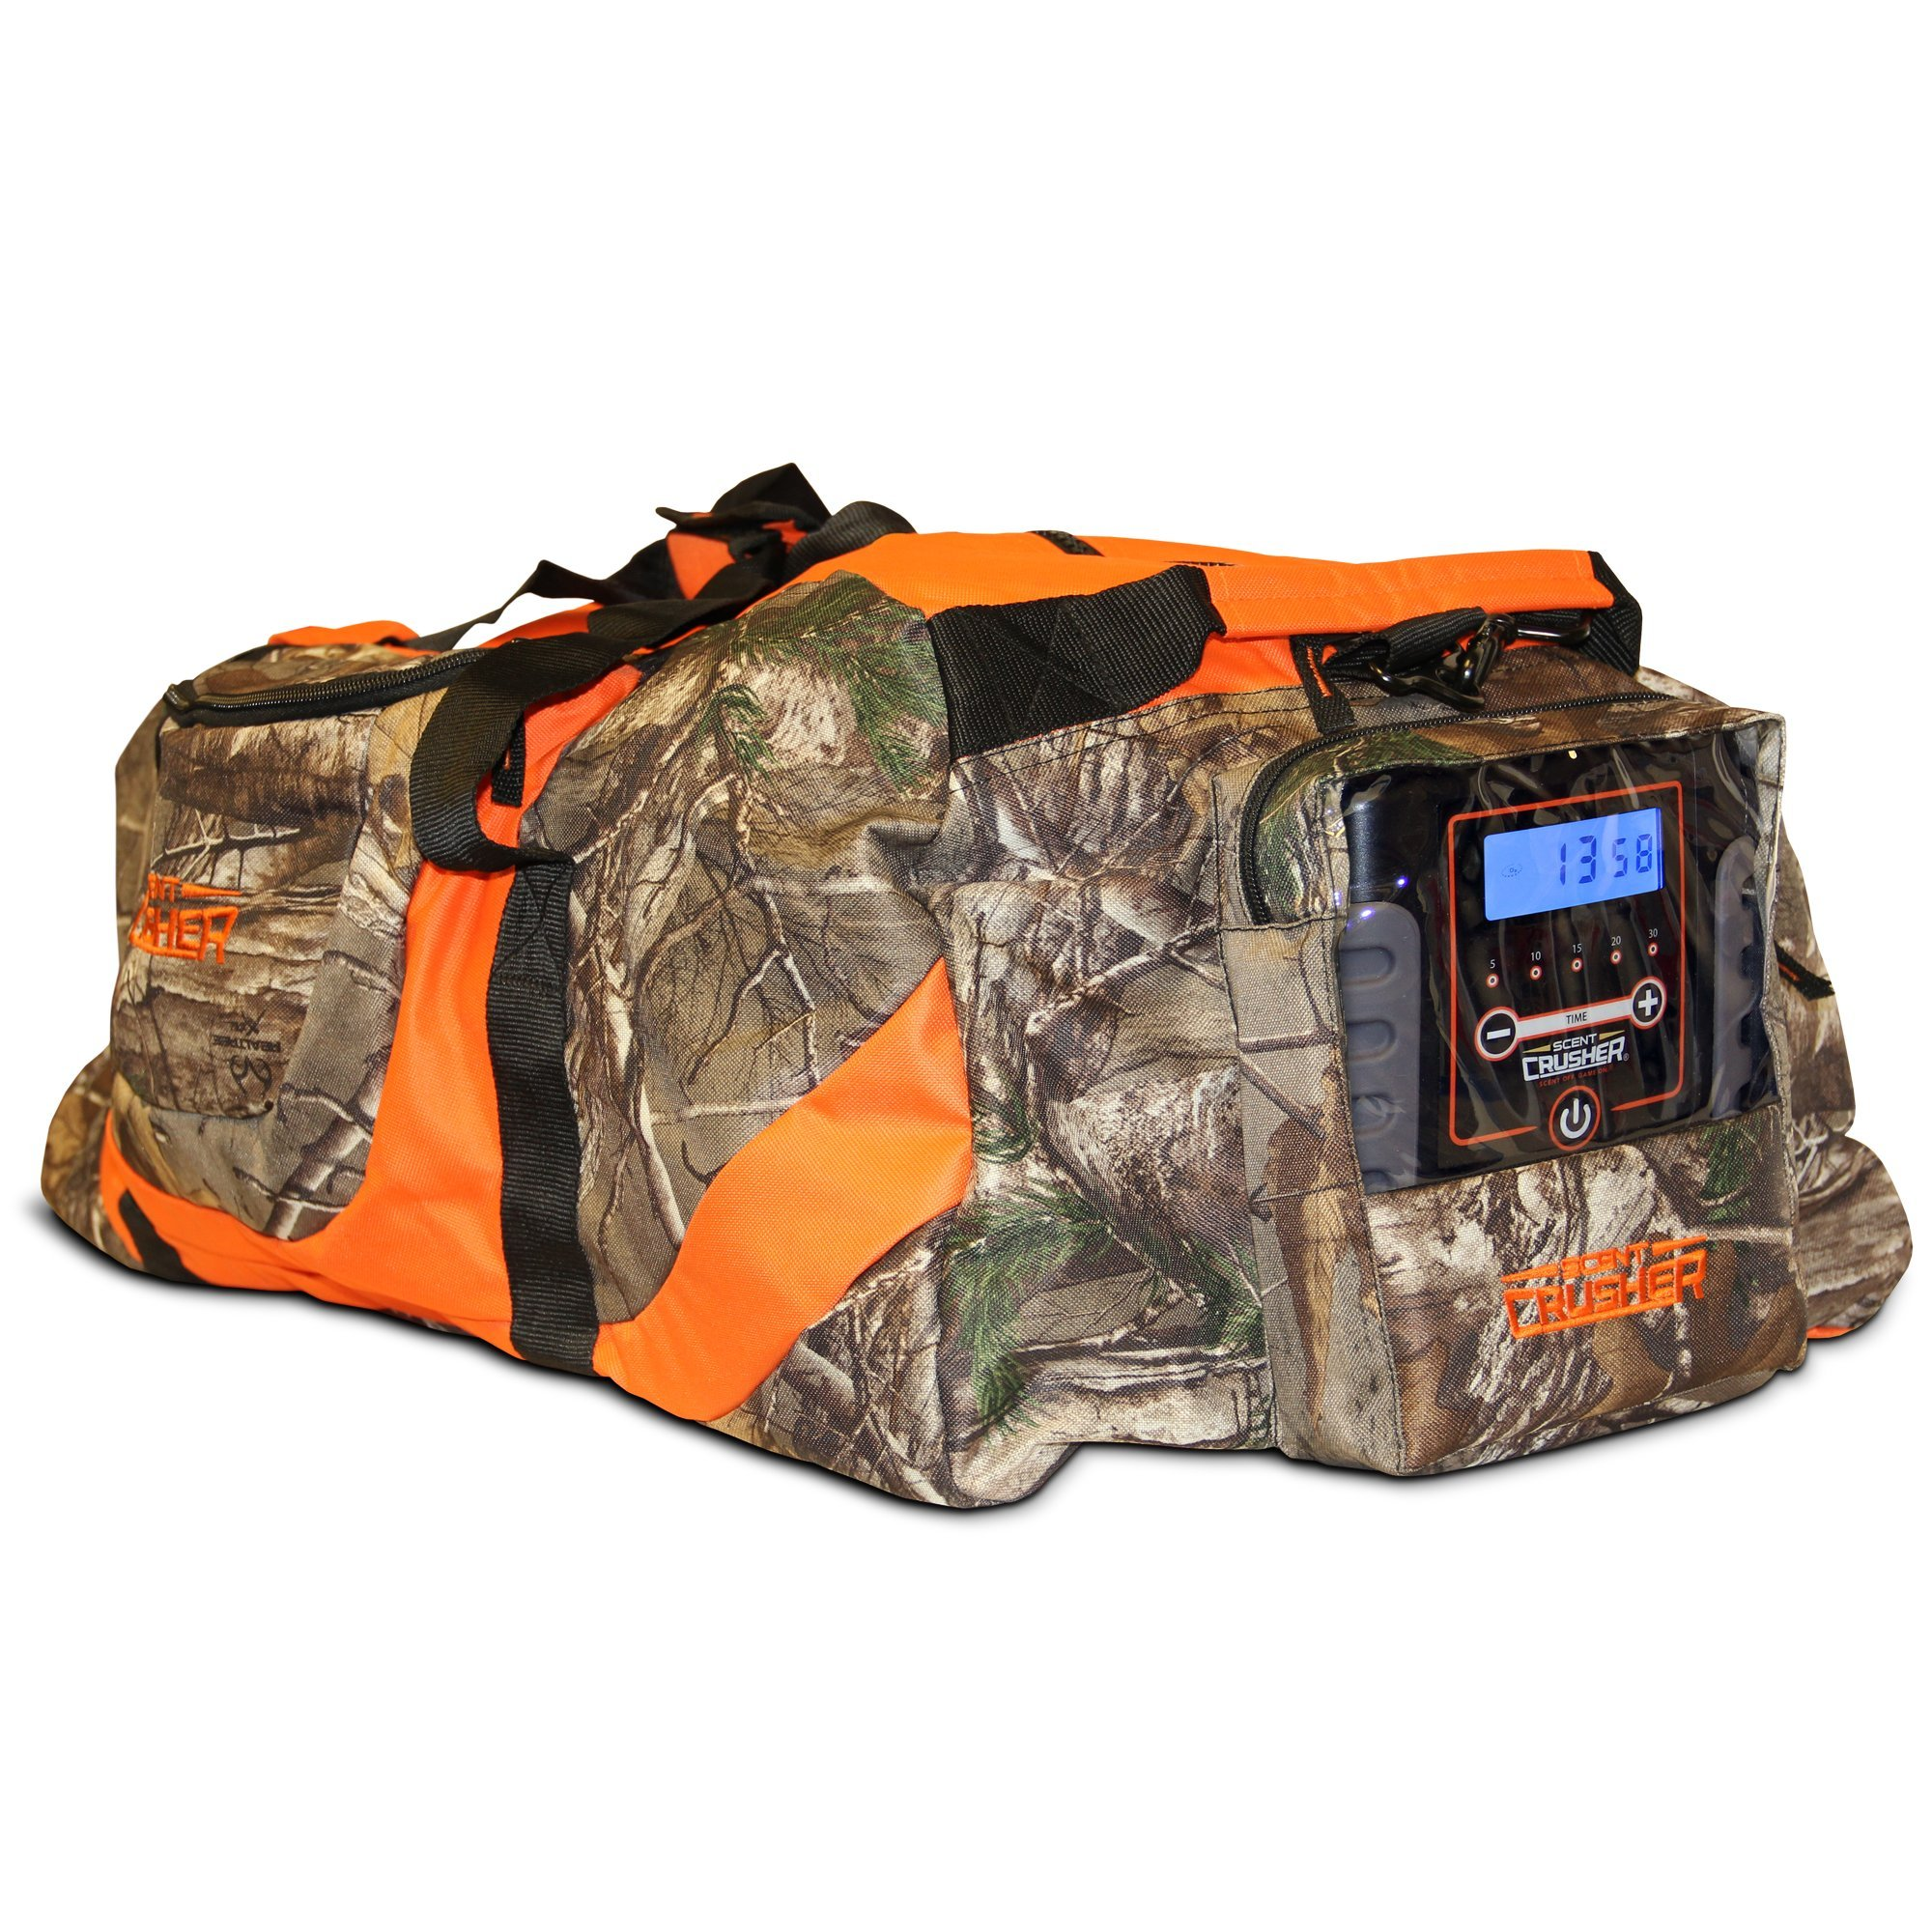 Scent Crusher Realtree Camo Gear Bag with Ozone Generator - Destroys Odors Within 30 mins, Use at Home or On The Way to The Field, Airport/TSA Compliant by Scent Crusher